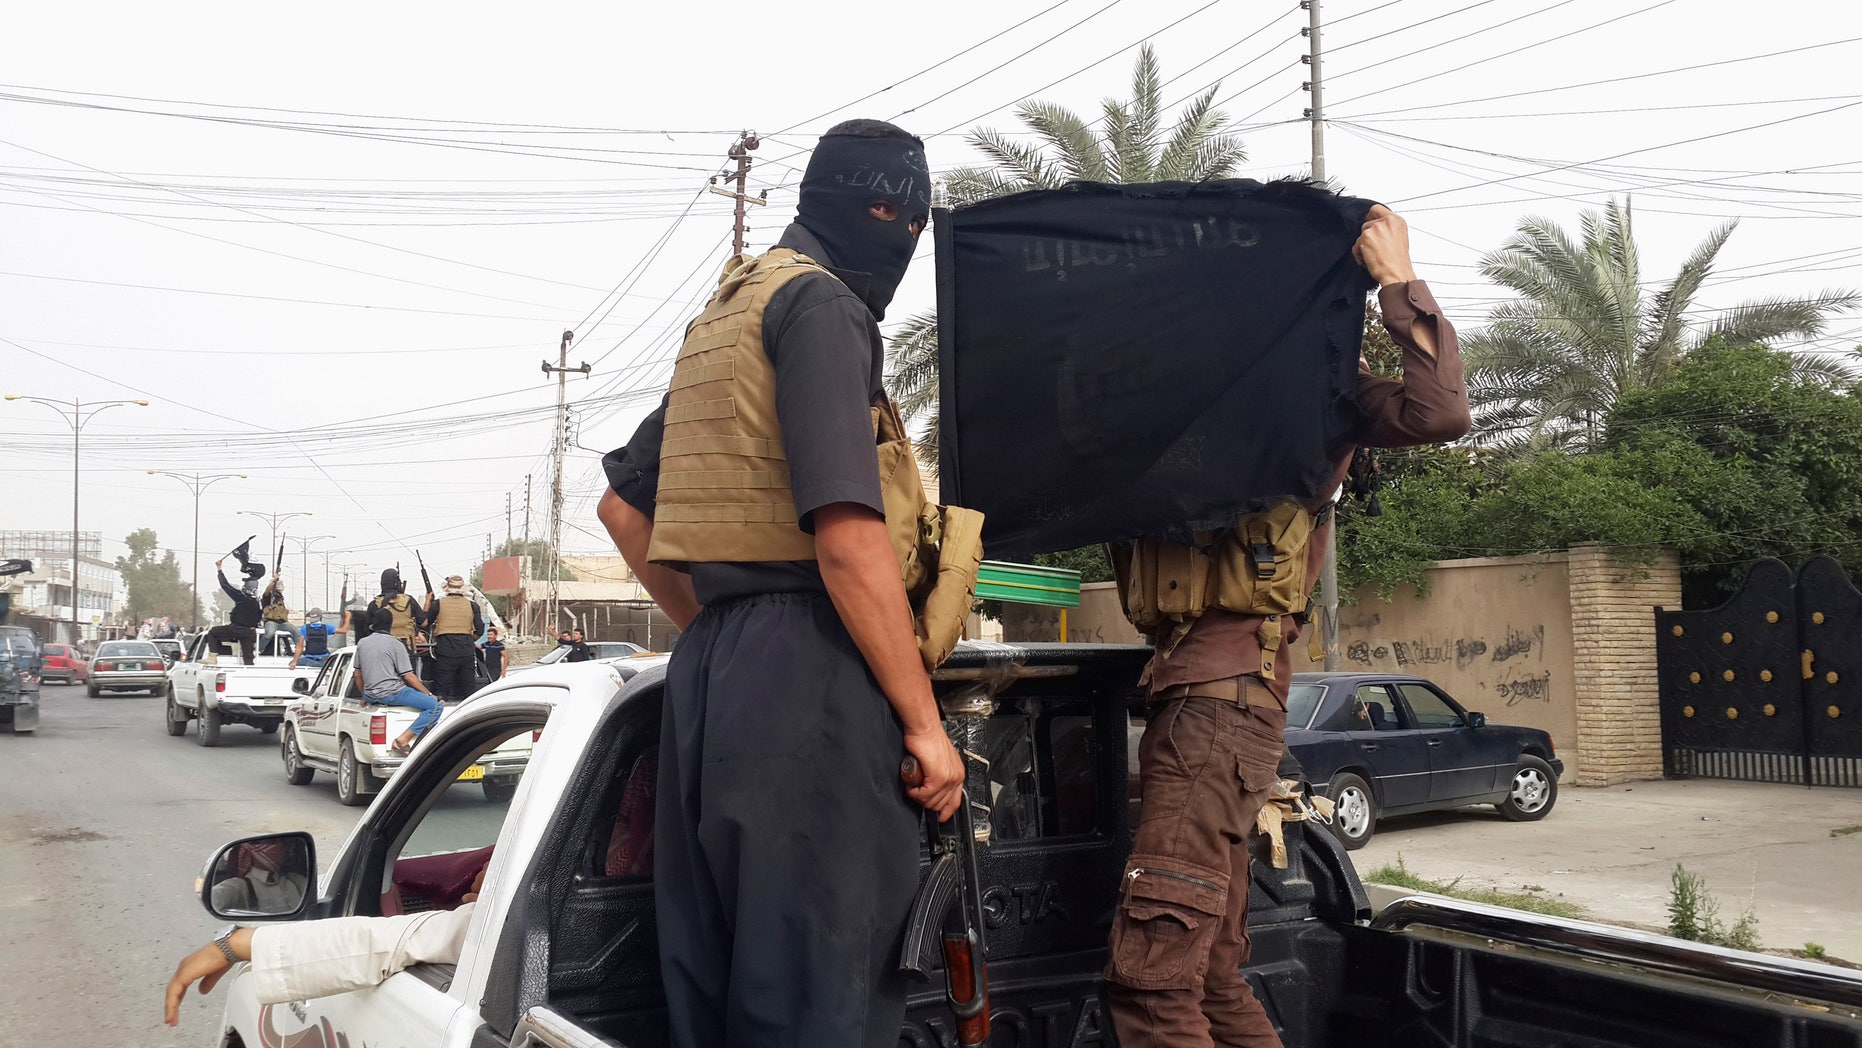 June 12, 2014: ISIS fighters in Mosul, Iraq. (Reuters)